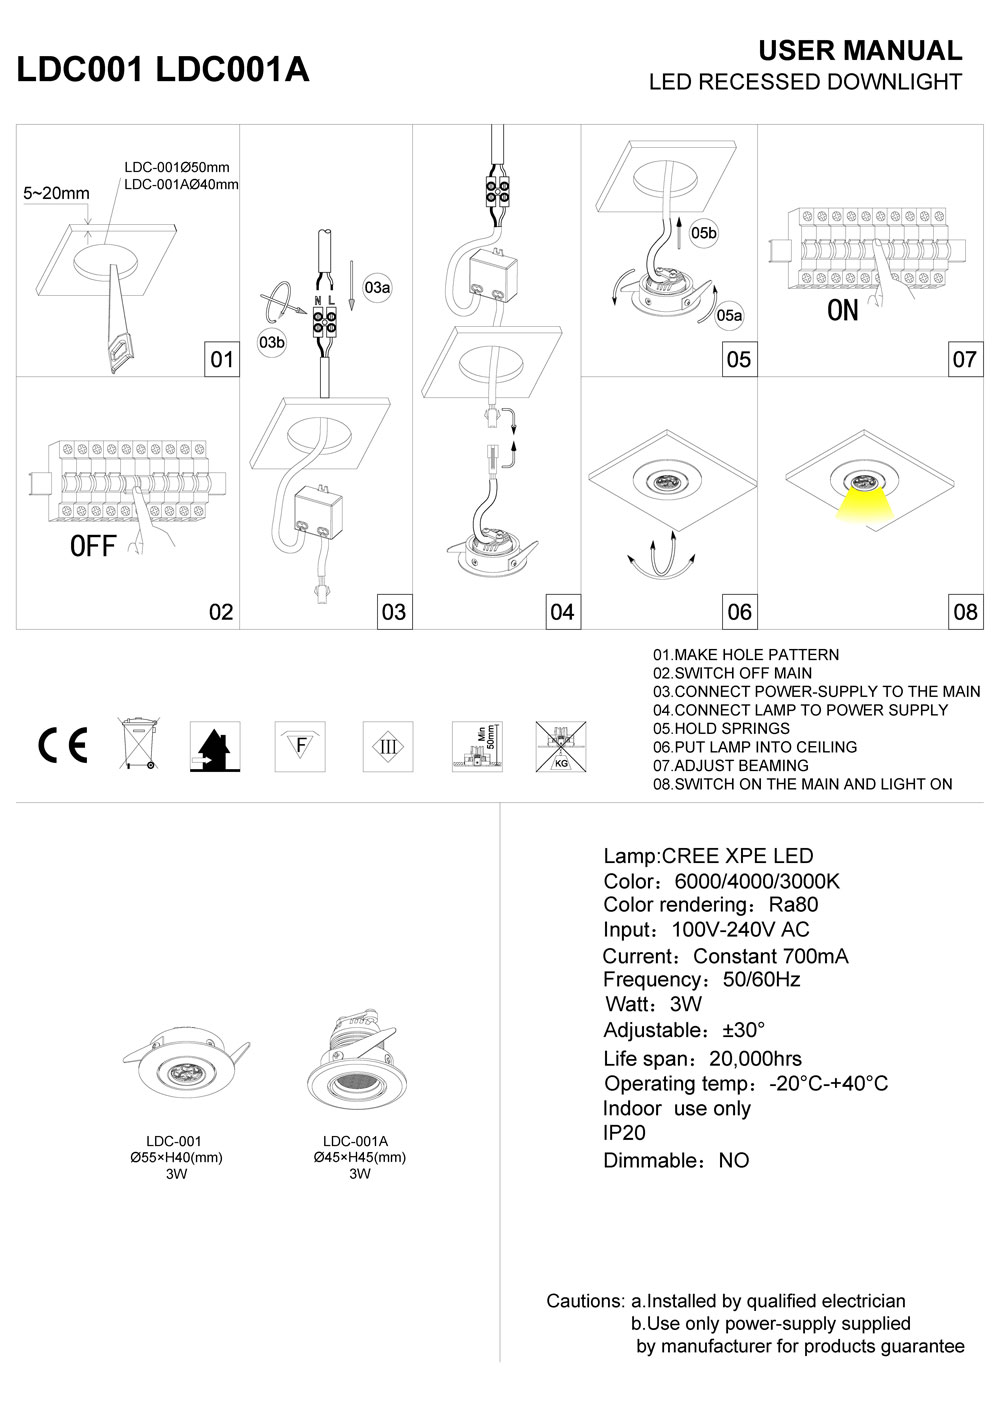 LDC001-LDC001A mini LED downlight installation guide